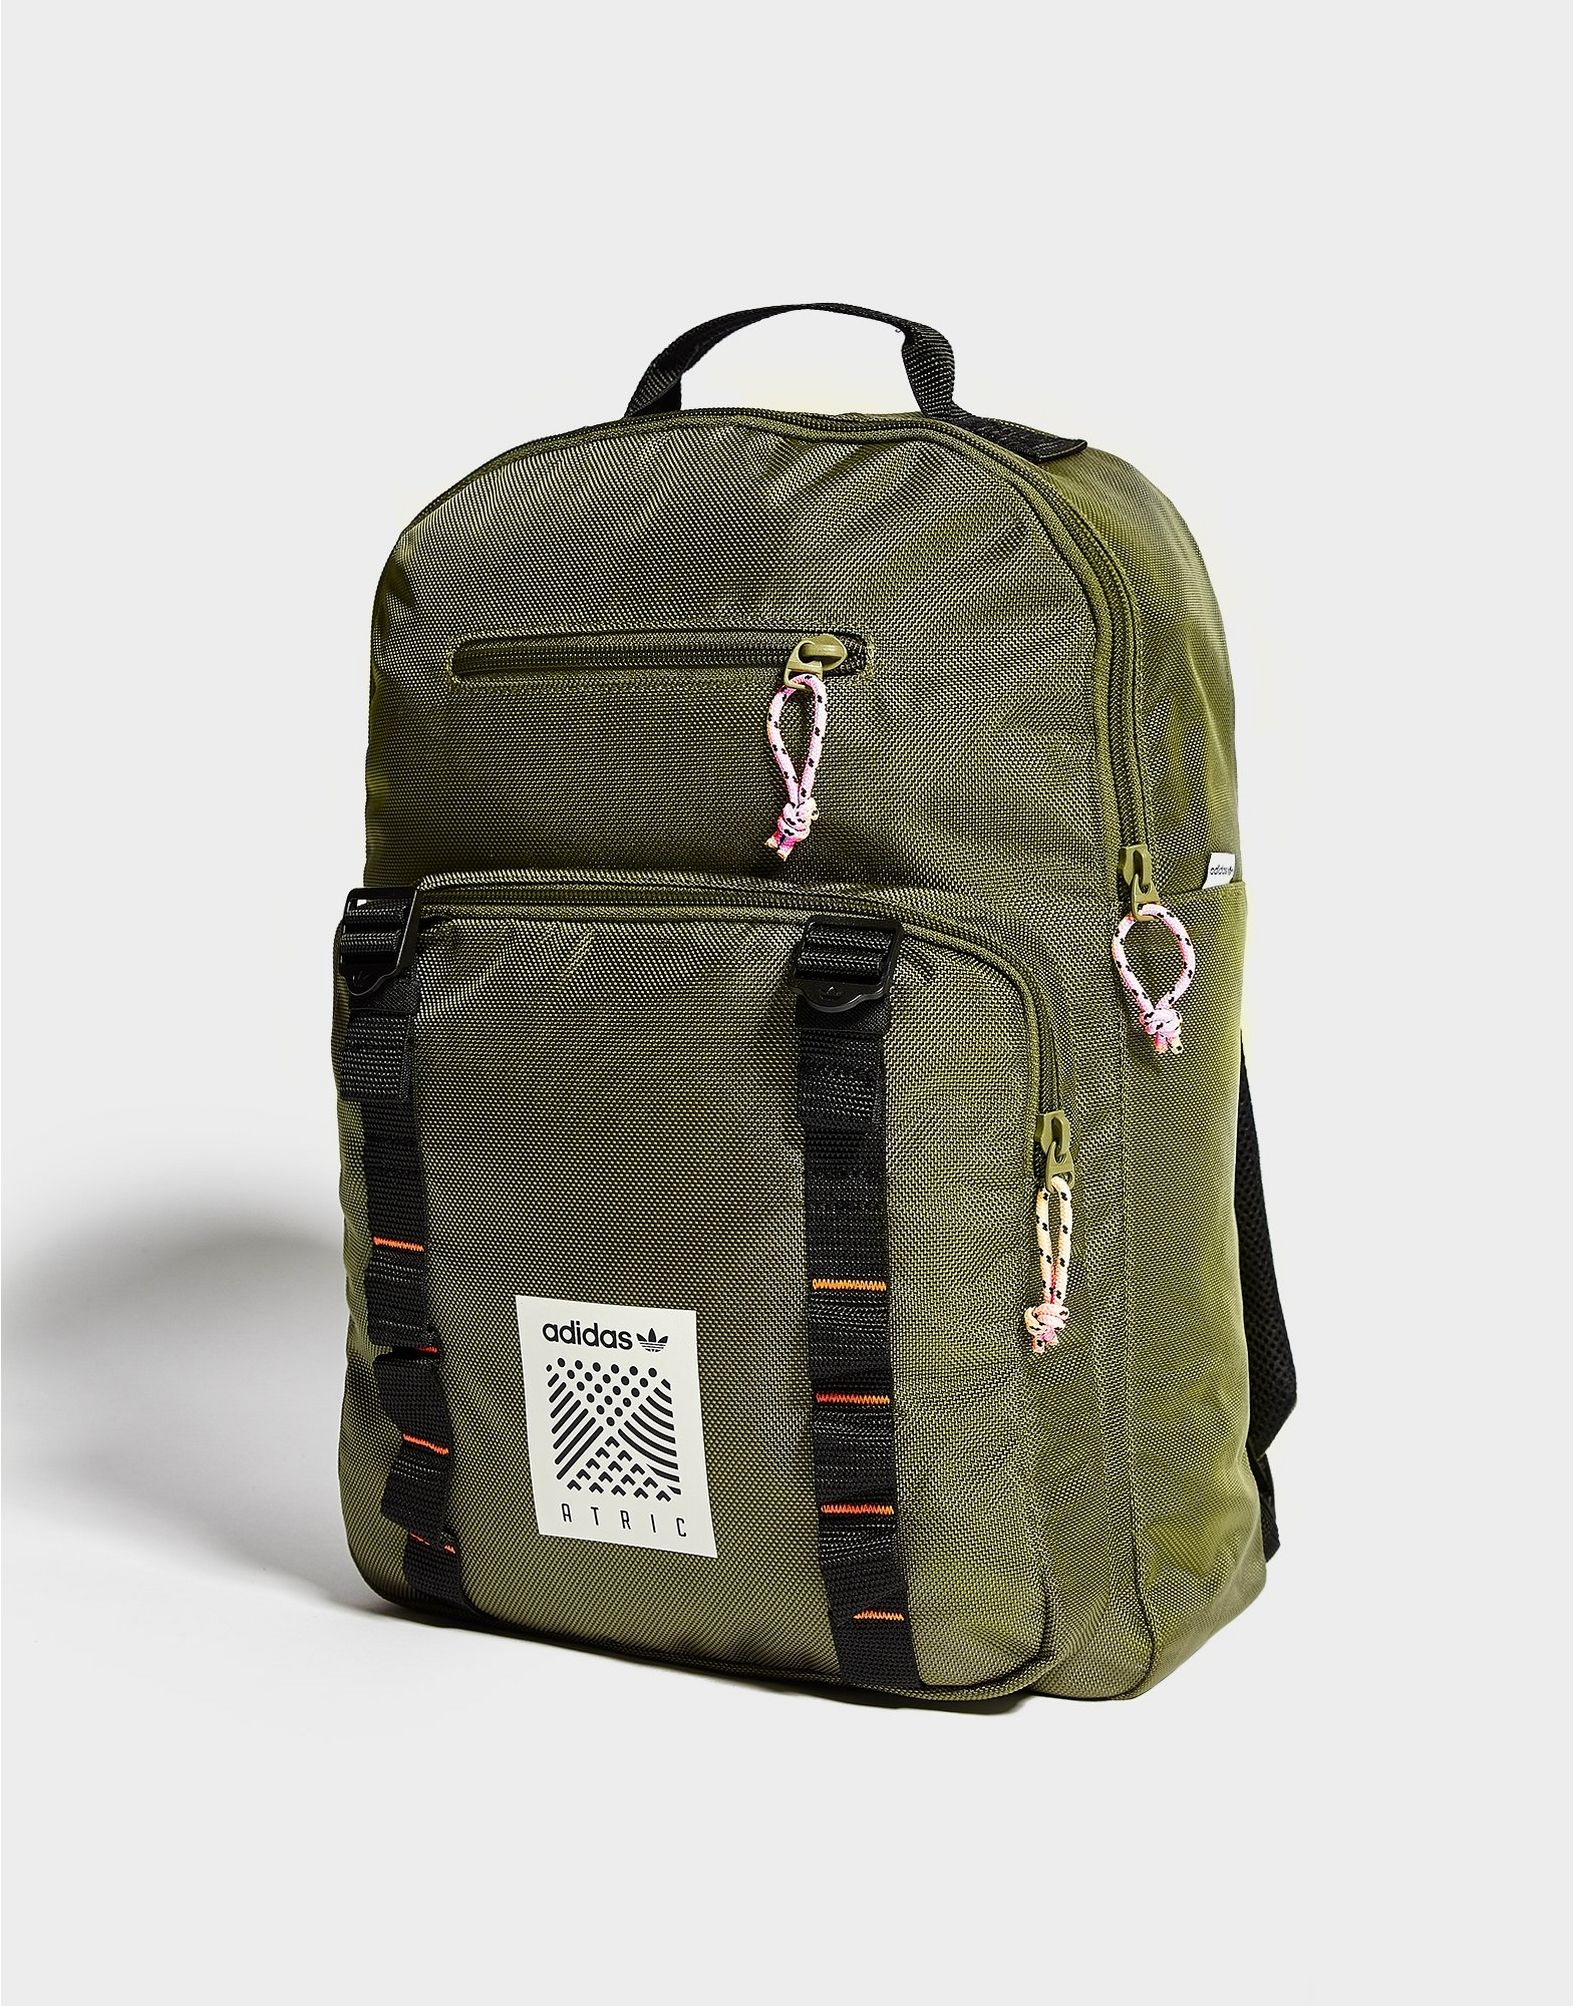 Adidas Originals Classic Atric Backpack Backpacks Adidas